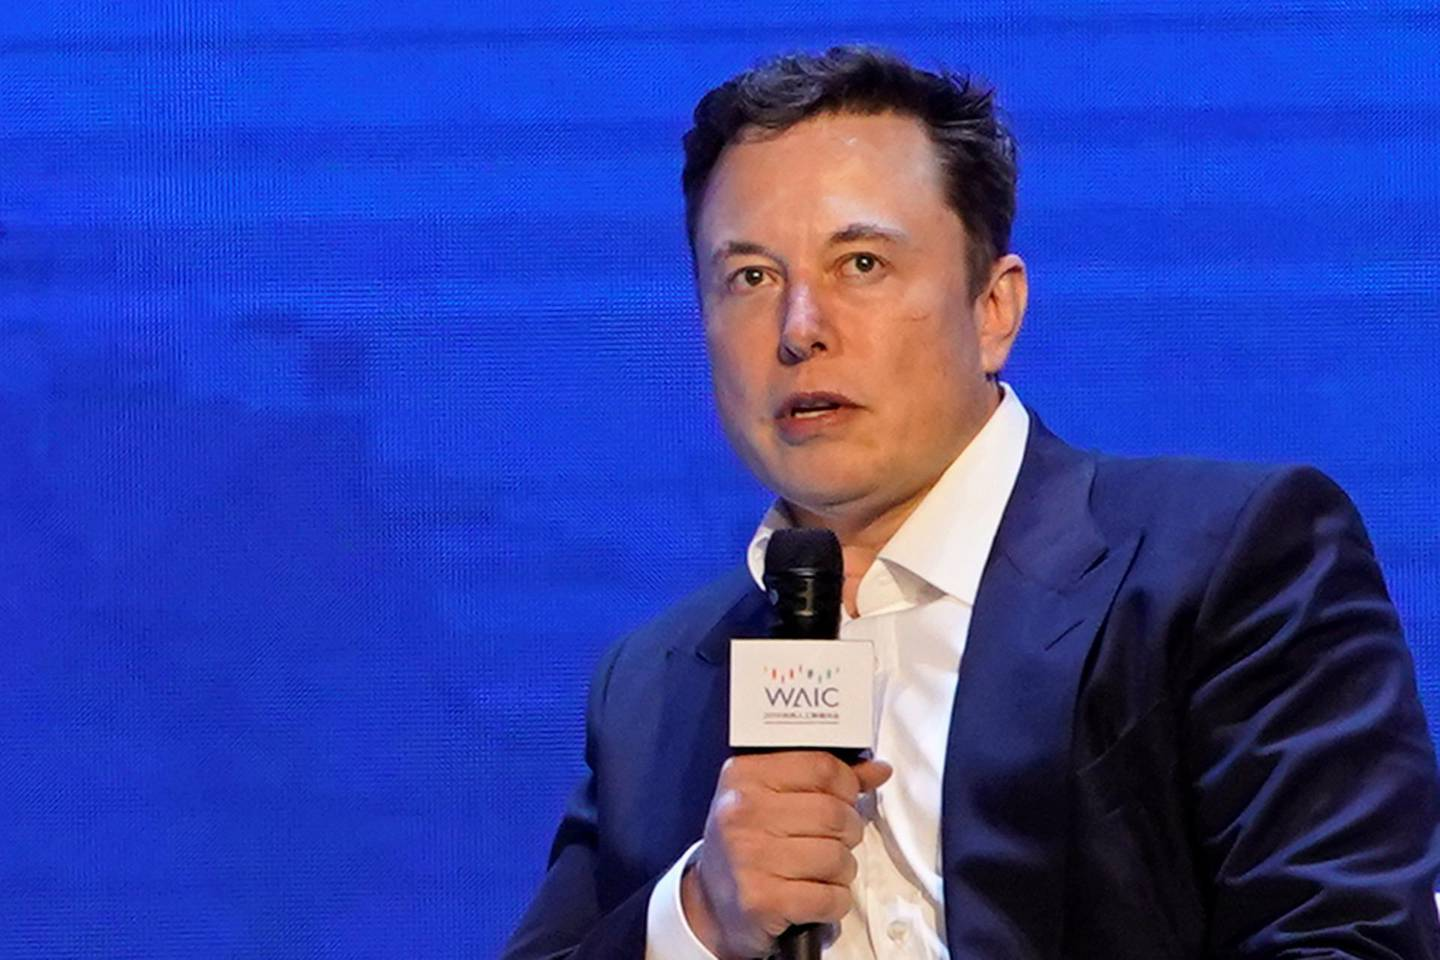 Tesla Inc CEO Elon Musk attends the World Artificial Intelligence Conference (WAIC) in Shanghai, China August 29, 2019. REUTERS/Aly Song